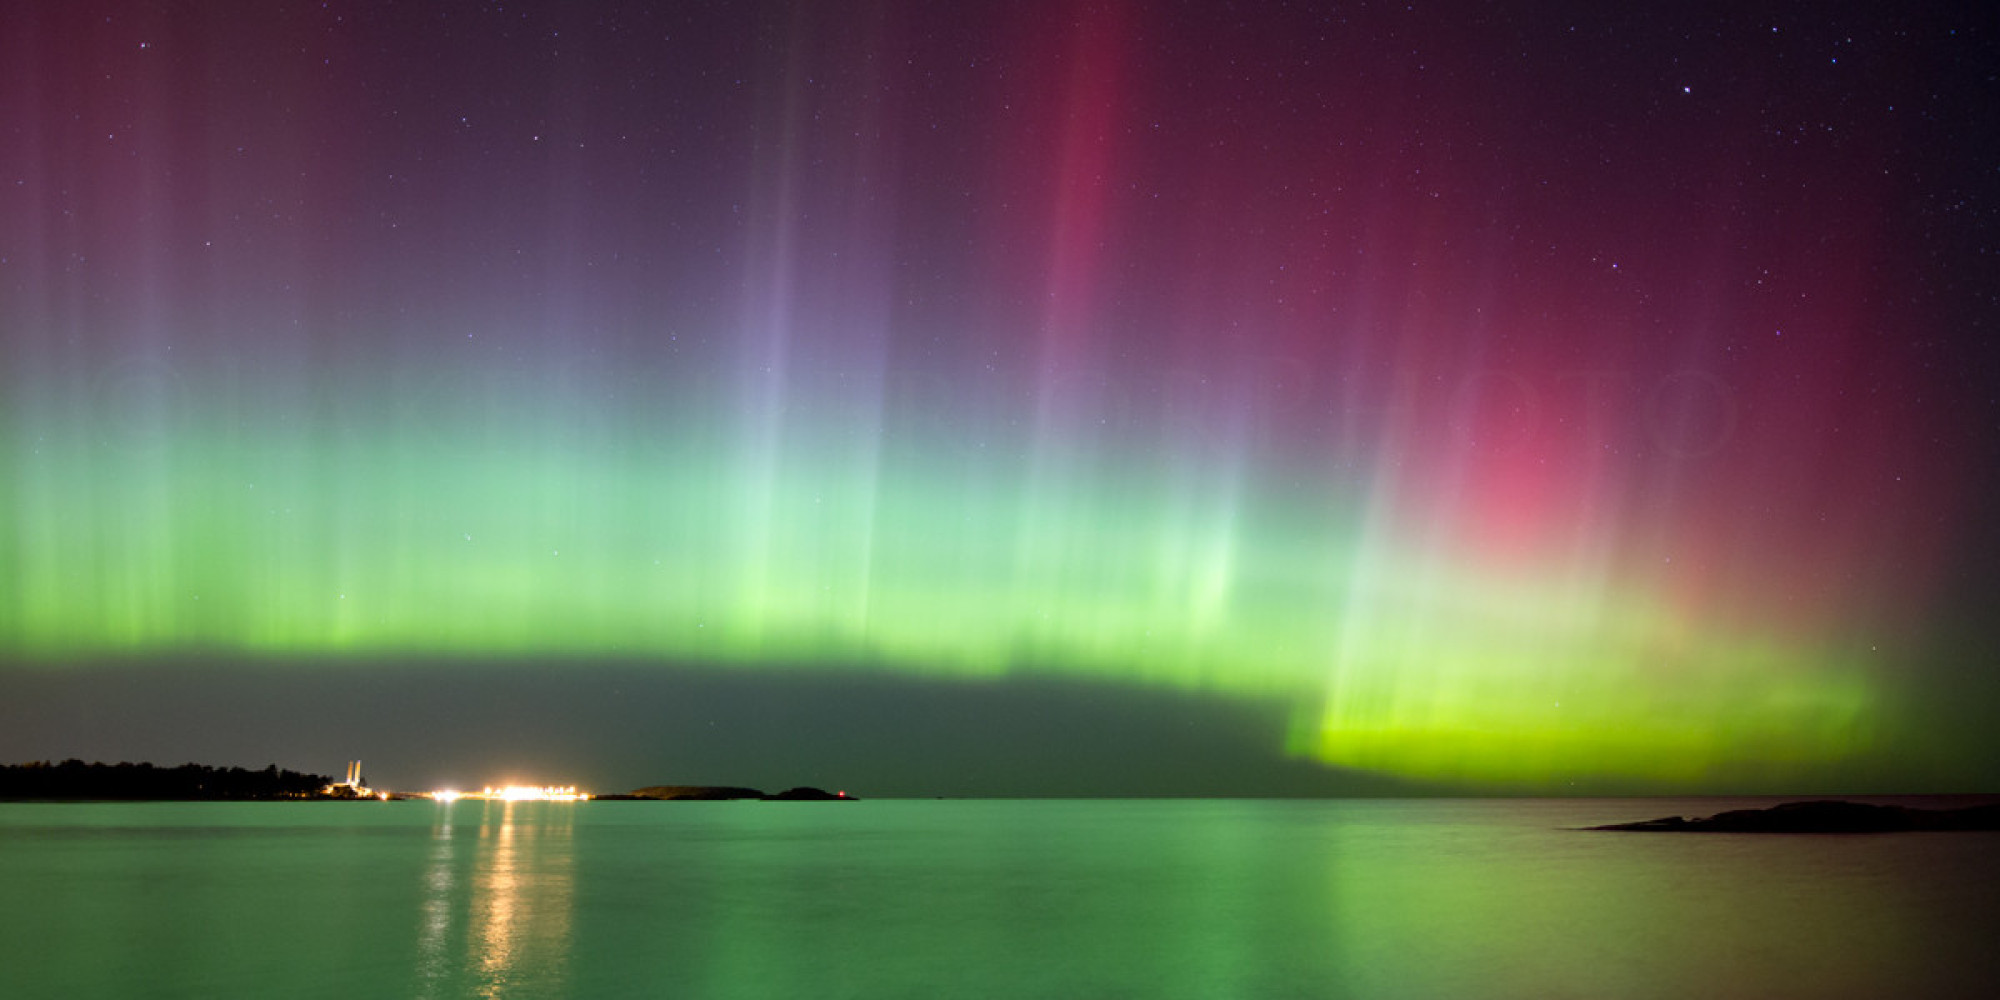 how to see the aurora borealis northern lights from michigan 39 s upper peninsula huffpost. Black Bedroom Furniture Sets. Home Design Ideas